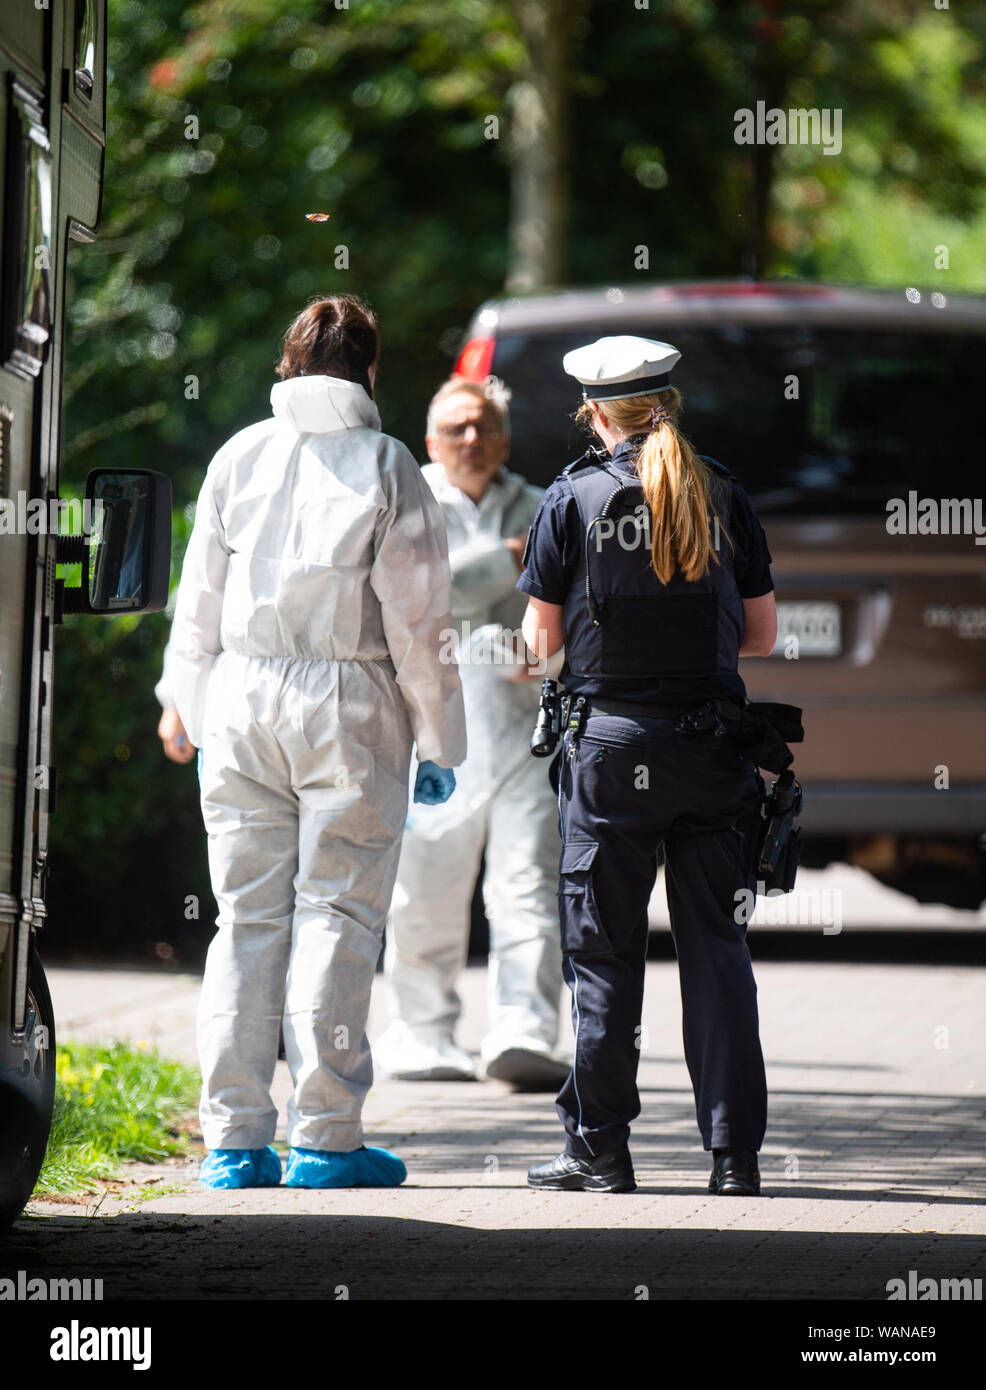 Tornesch Germany 21st Aug 2019 Forensic Officers And Police Officers Stand In Front Of A House In Which The Body Of A Woman Was Found According To The Police The Woman Was